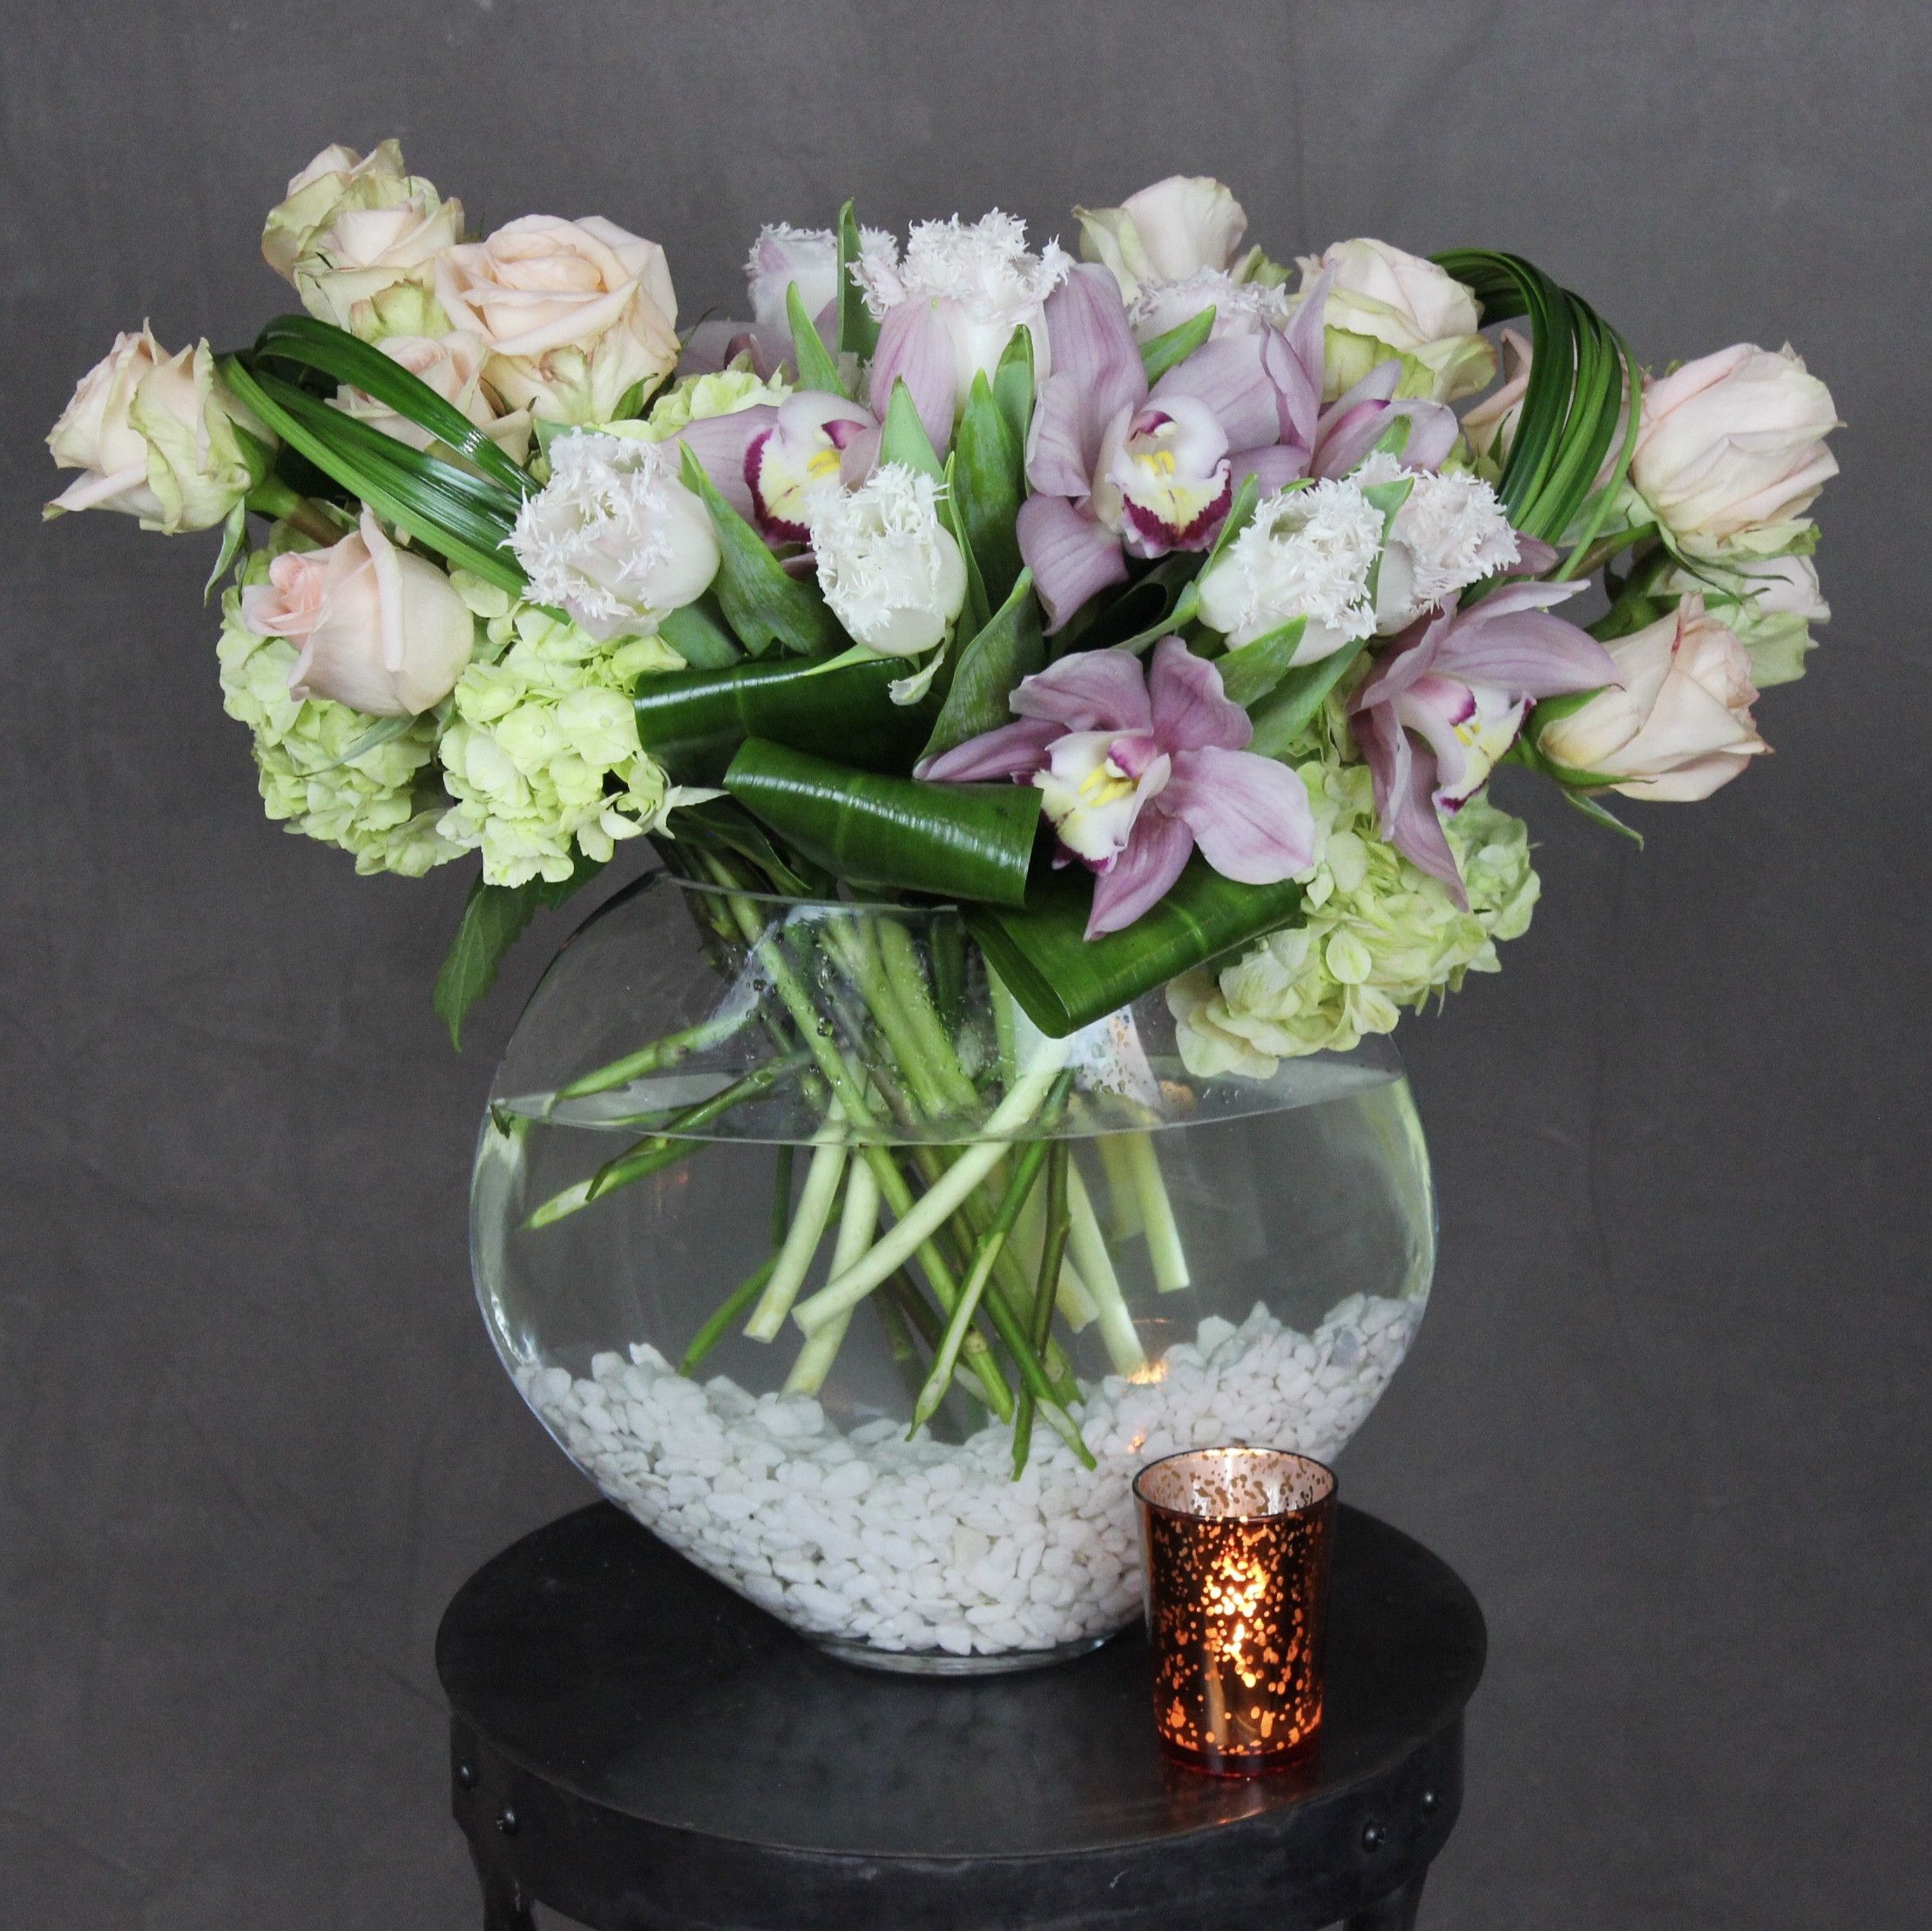 To the Moon and Back Flower delivery, Event centerpiece